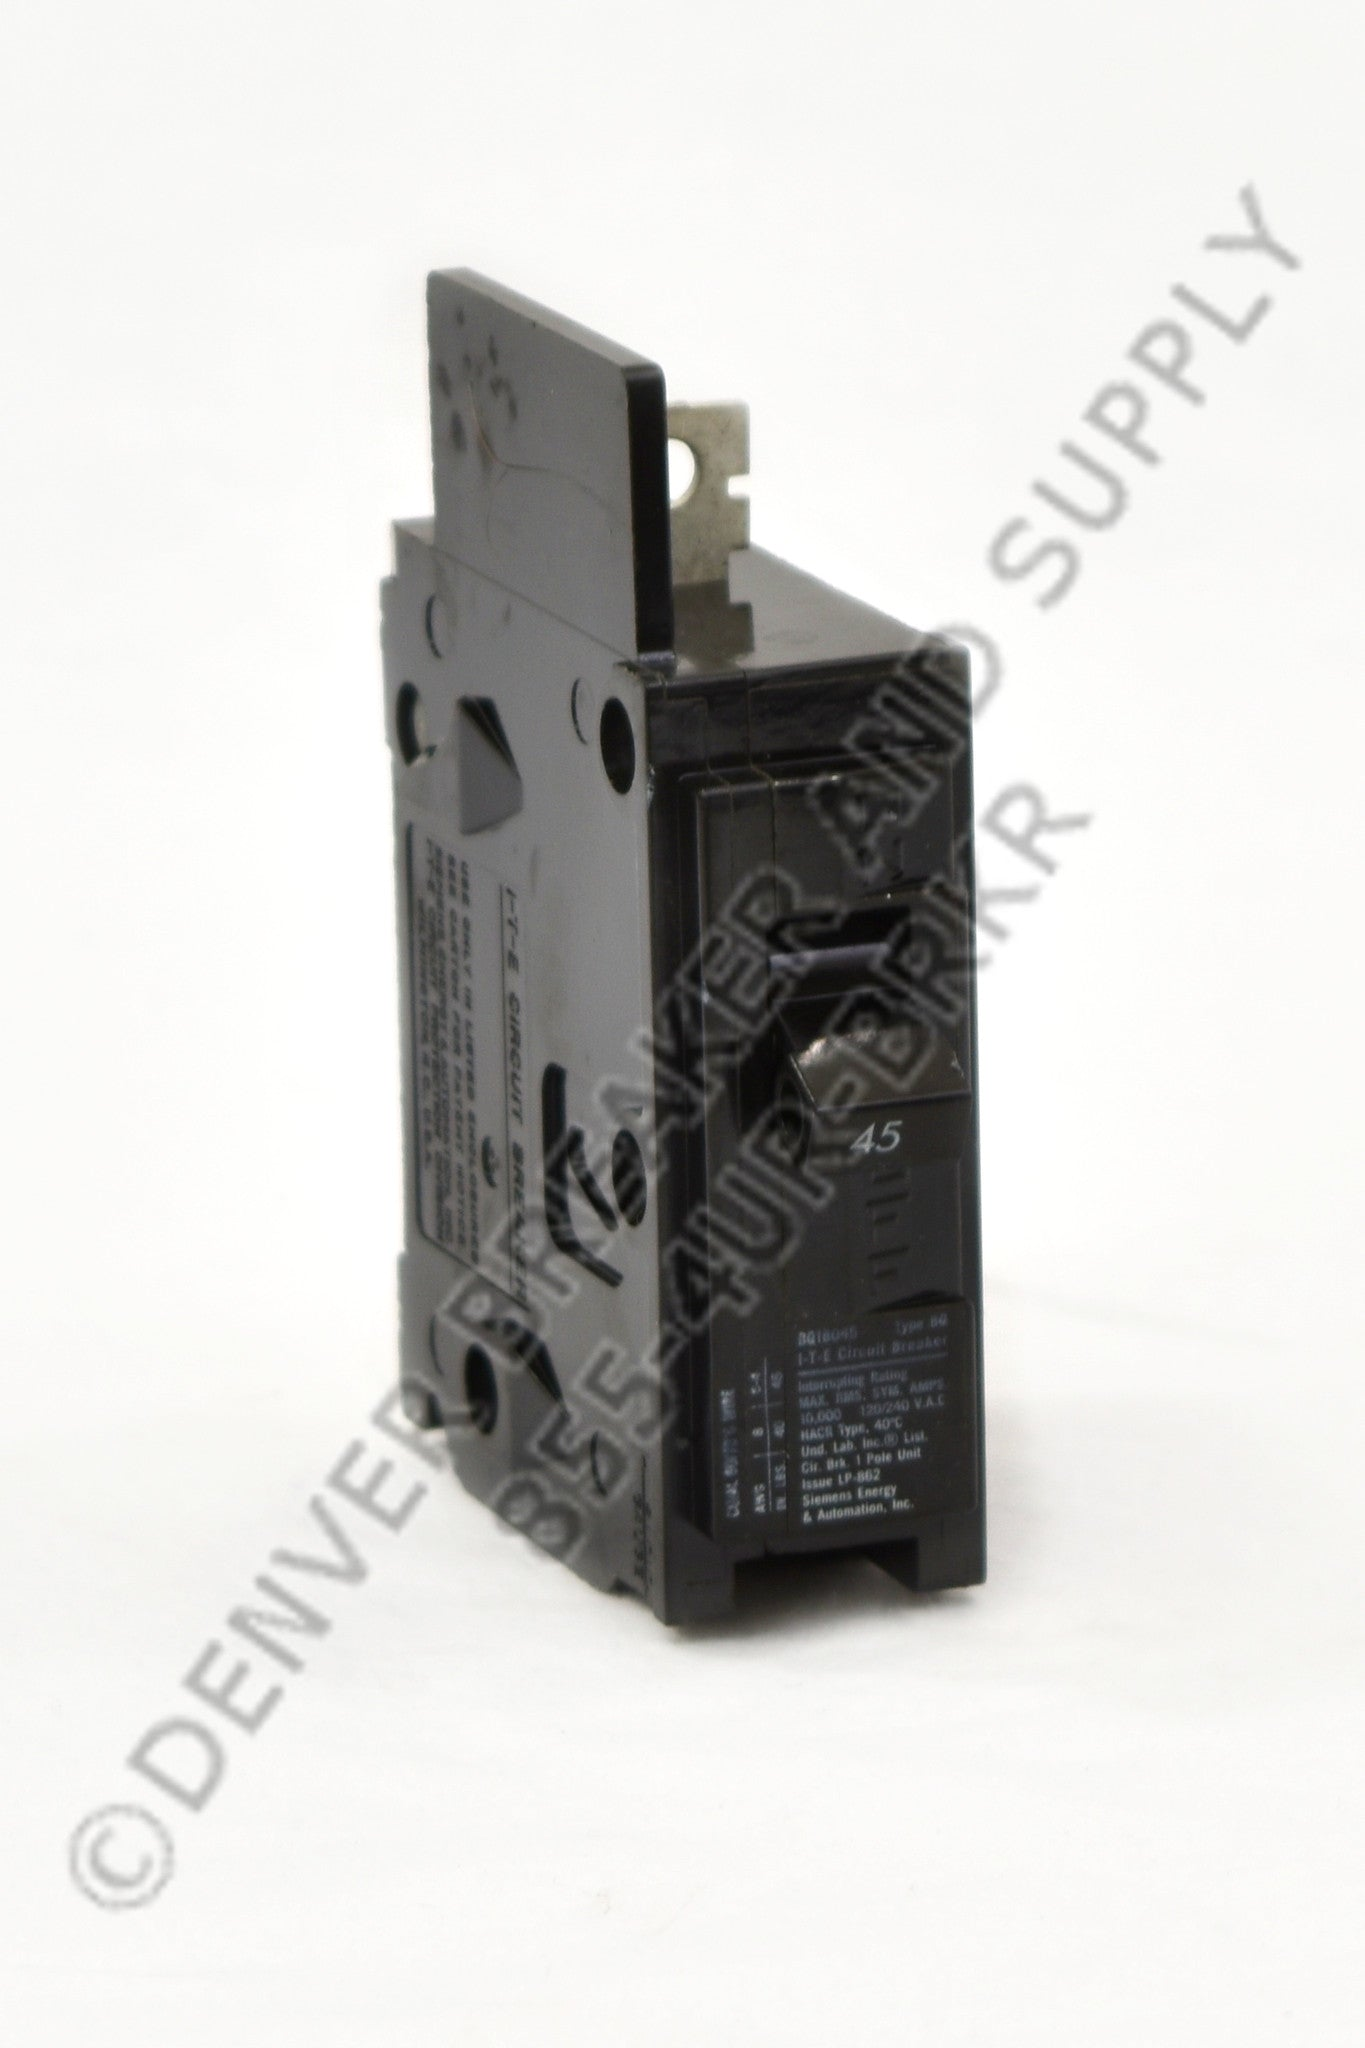 Siemens BQ1B01500S01 Circuit Breakers